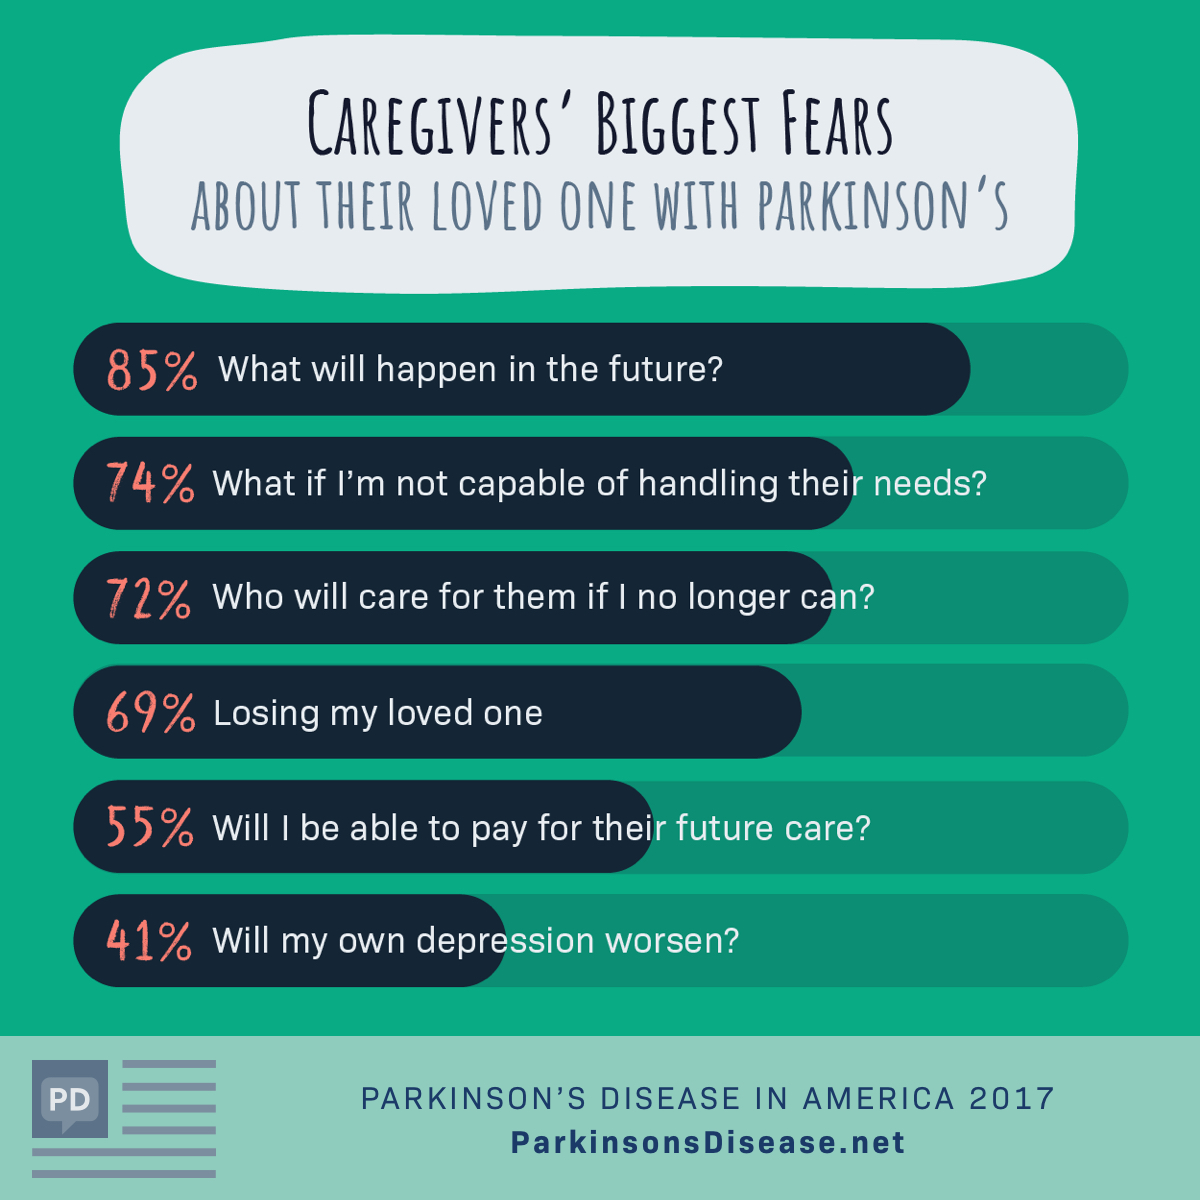 Caregivers' biggest fears